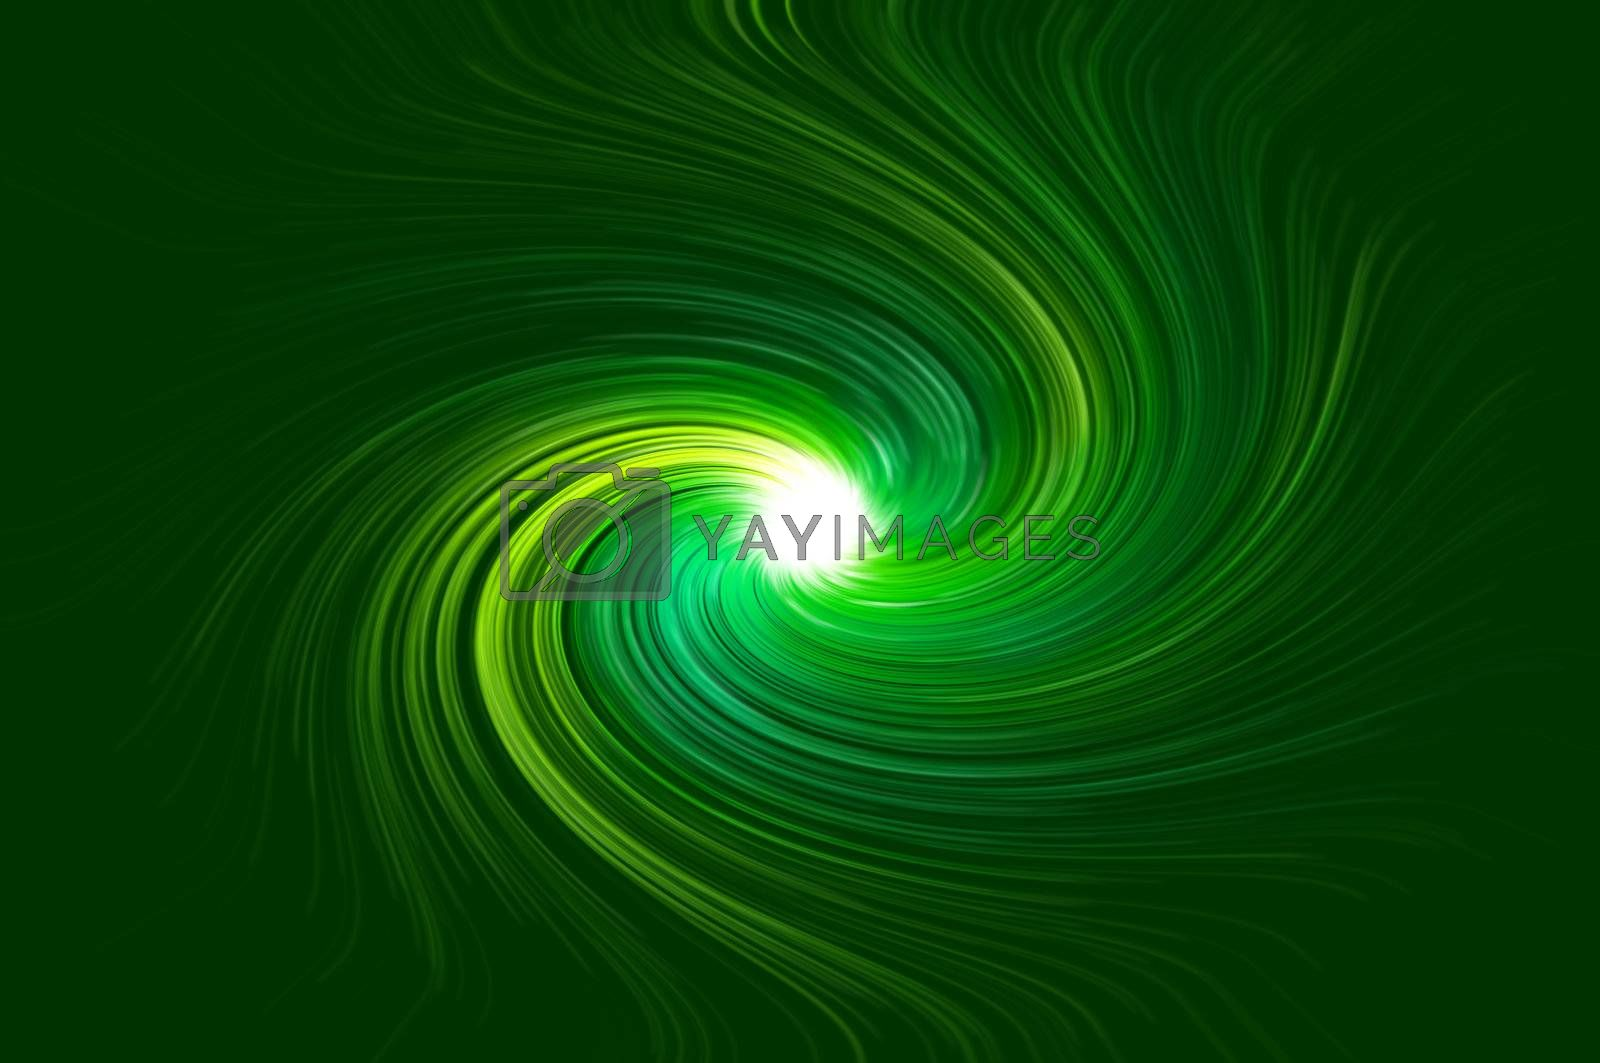 Abstract green swirling light against green background.